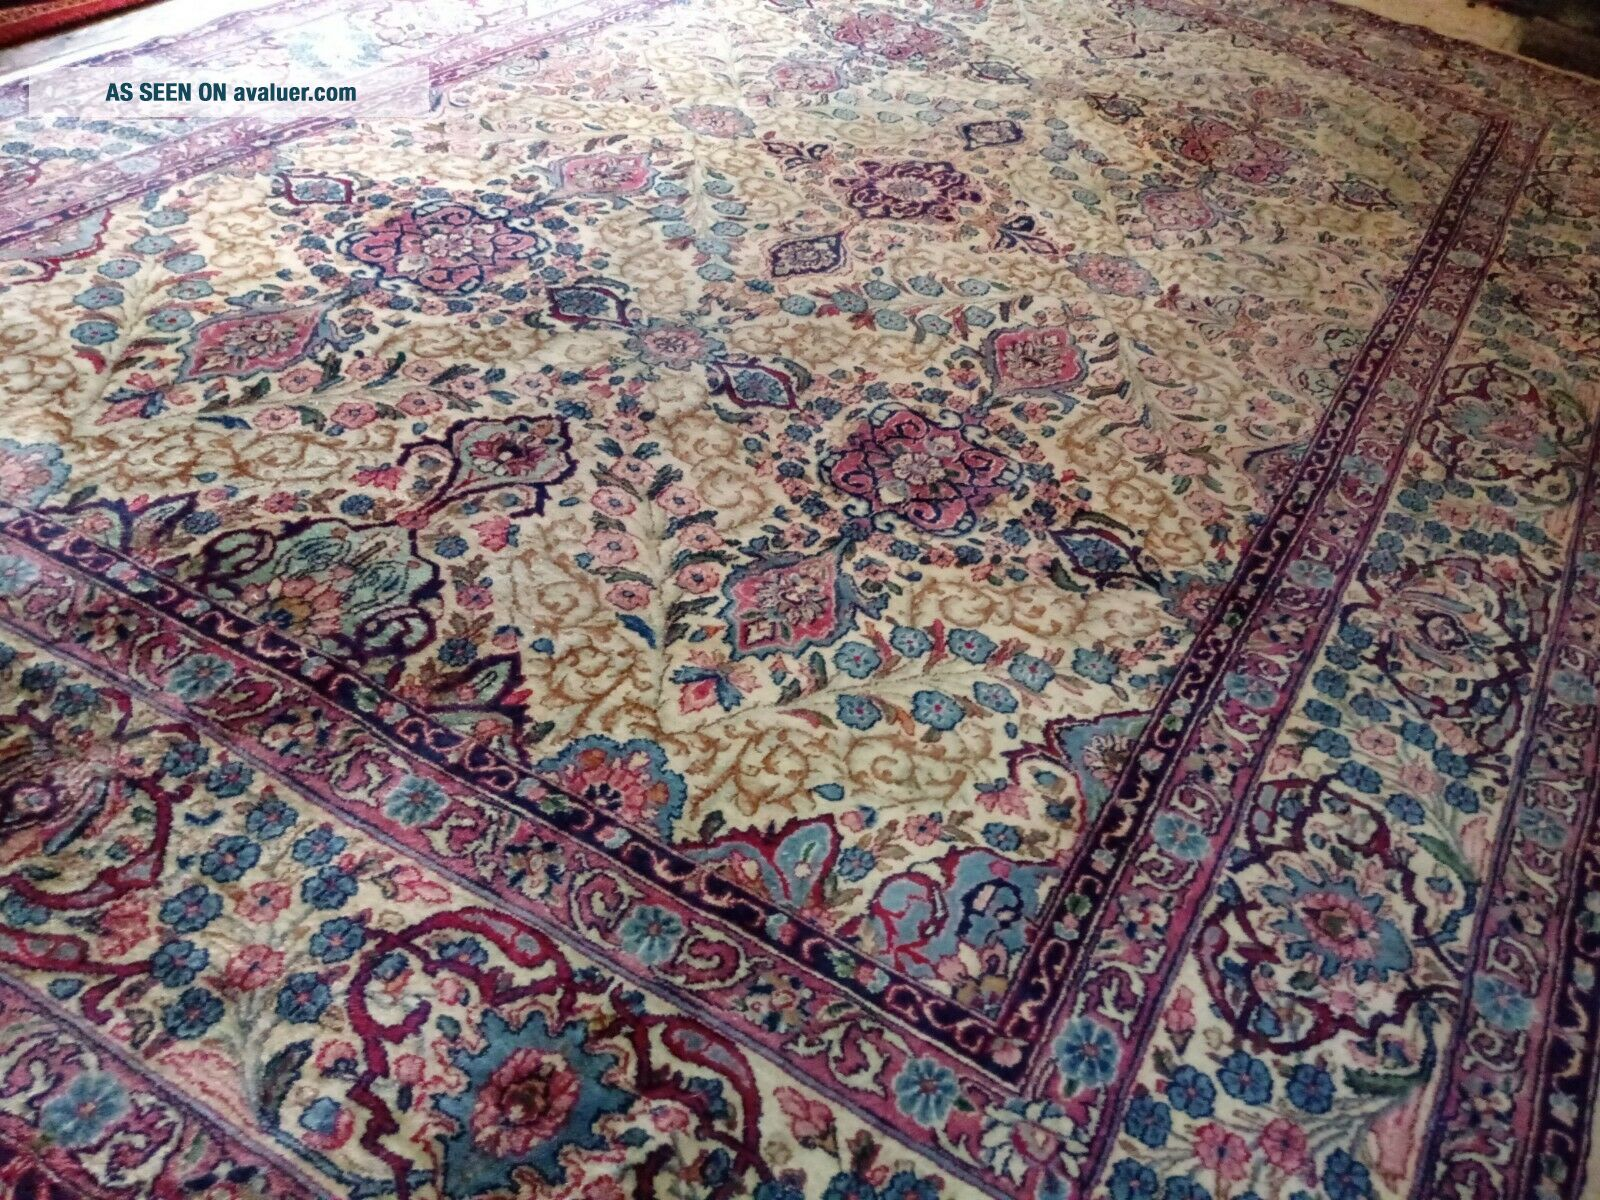 EXTRA LARGE Vintage Handknotted Floral PERSIAN Wool Rug 12x9ft Oriental Keshan